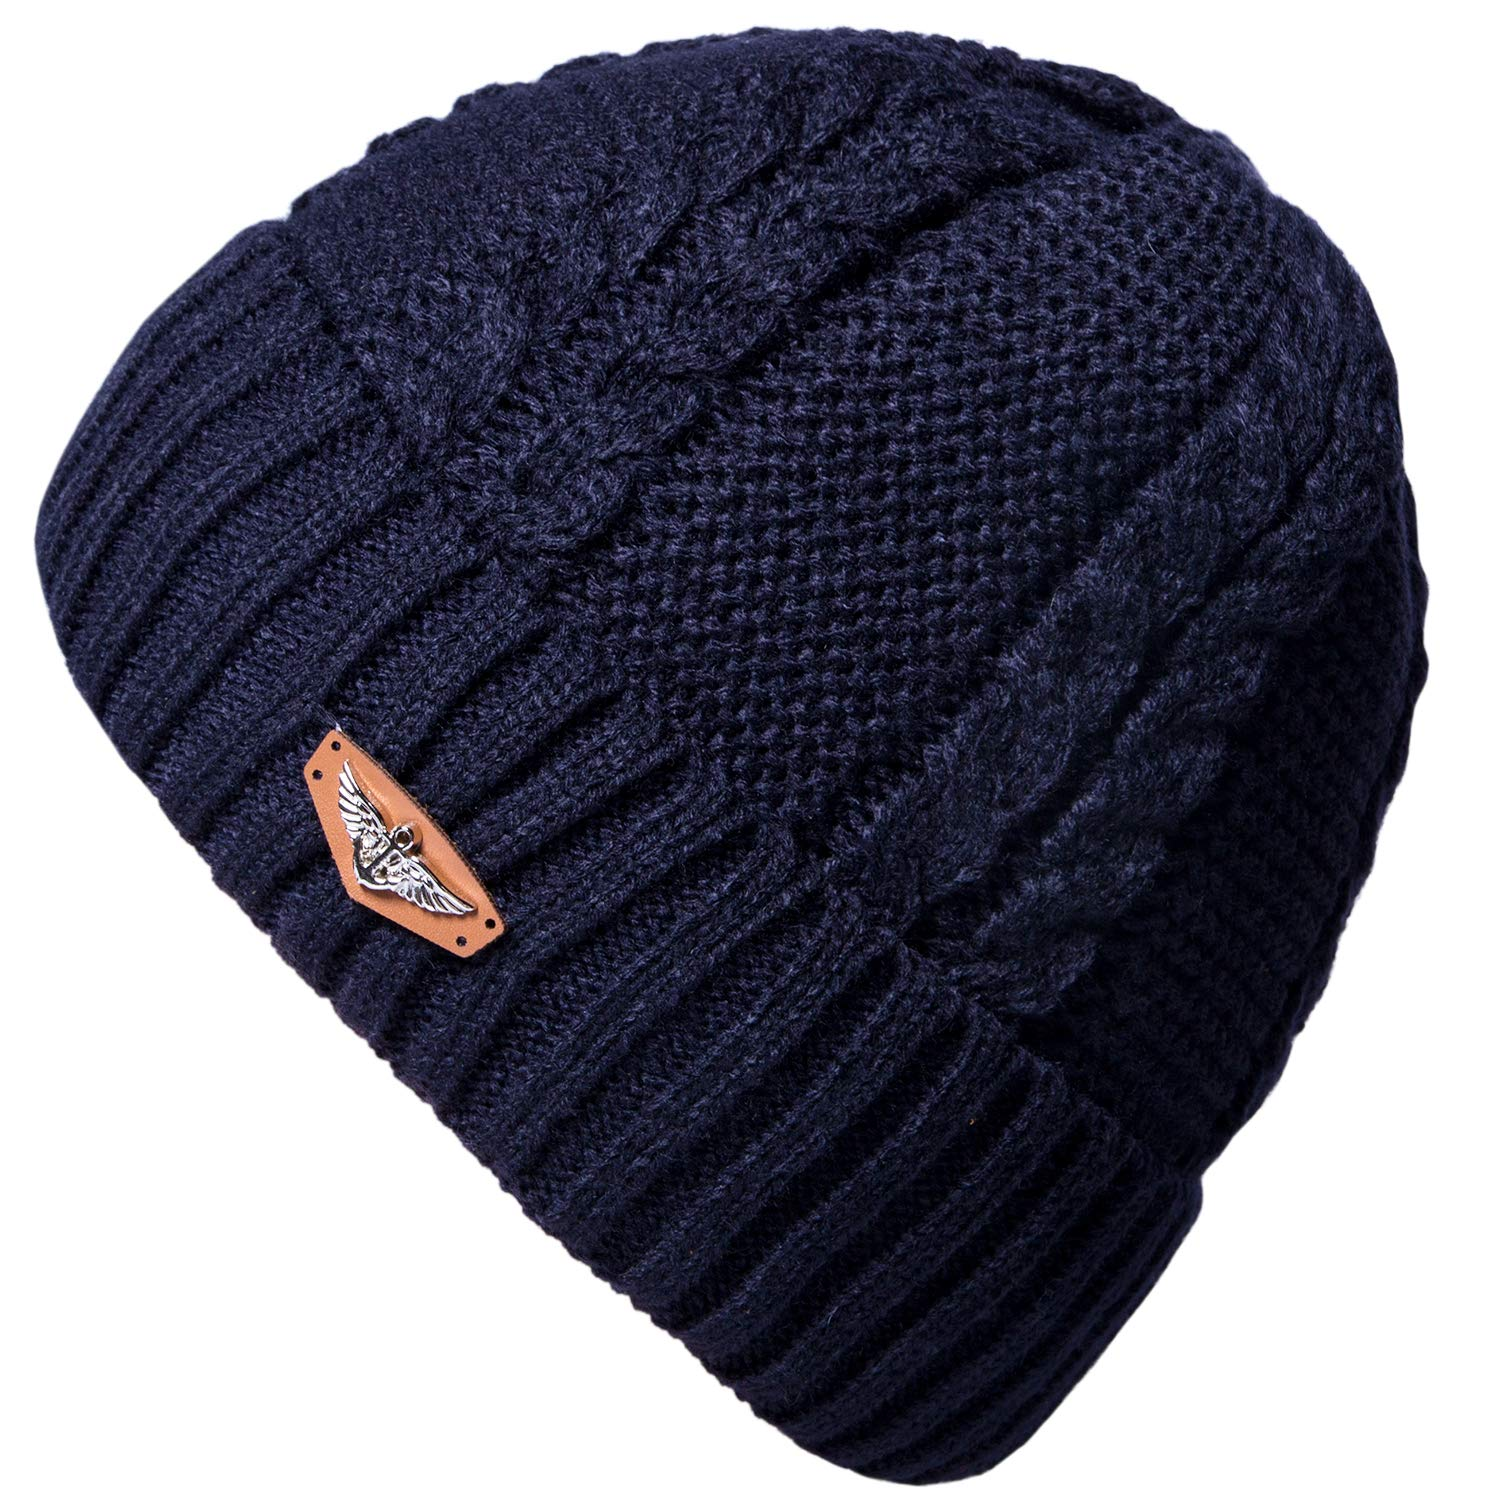 Loritta Men's Winter Warm Knitted Hat Thick Twisted Cap Fleece Slouchy Beanie Skully Hat ACS-132-5